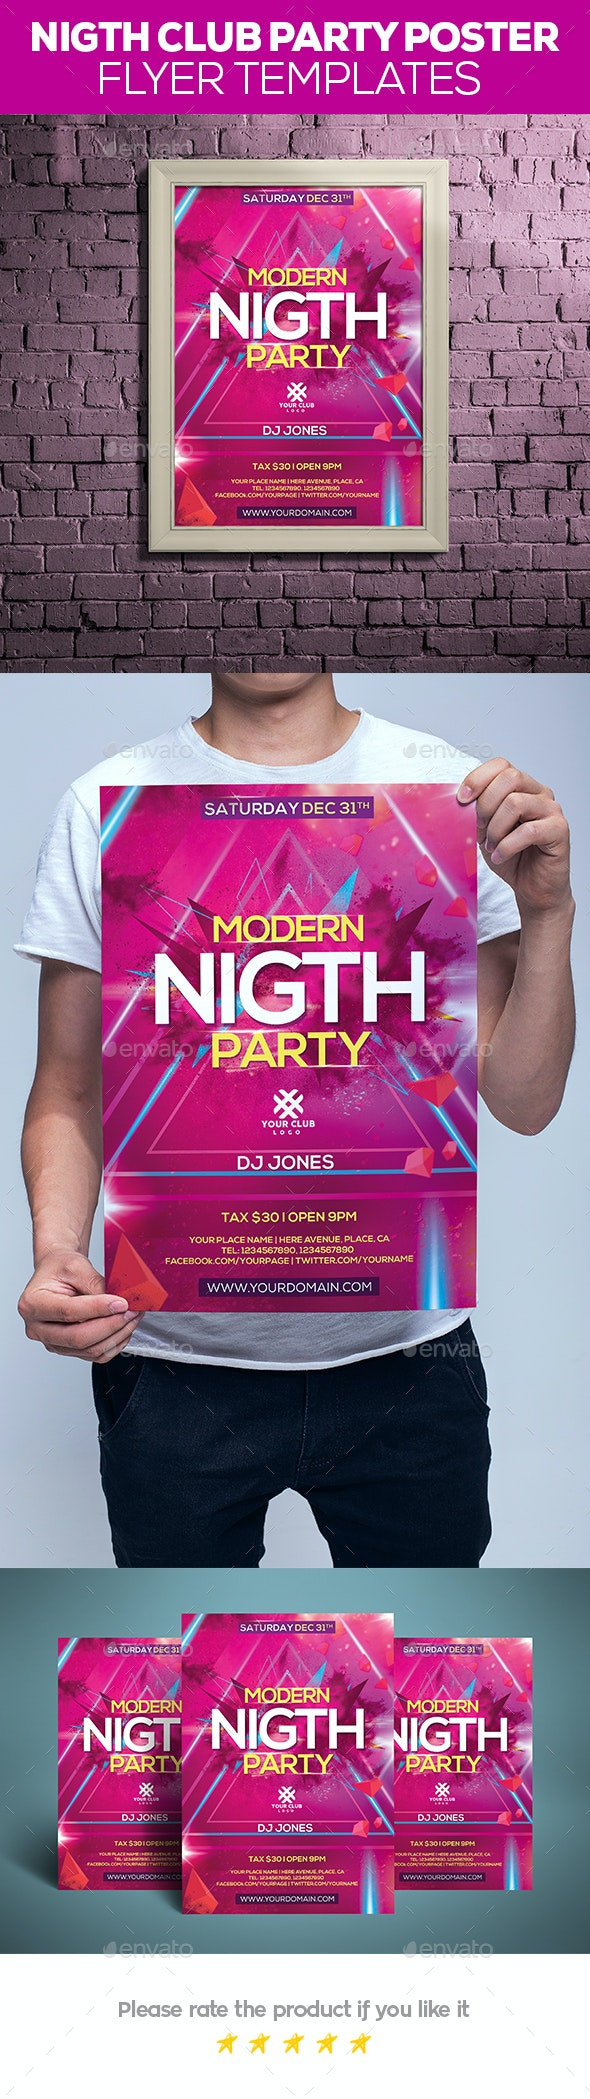 Night Club Party Poster / Flyer - Posters Print